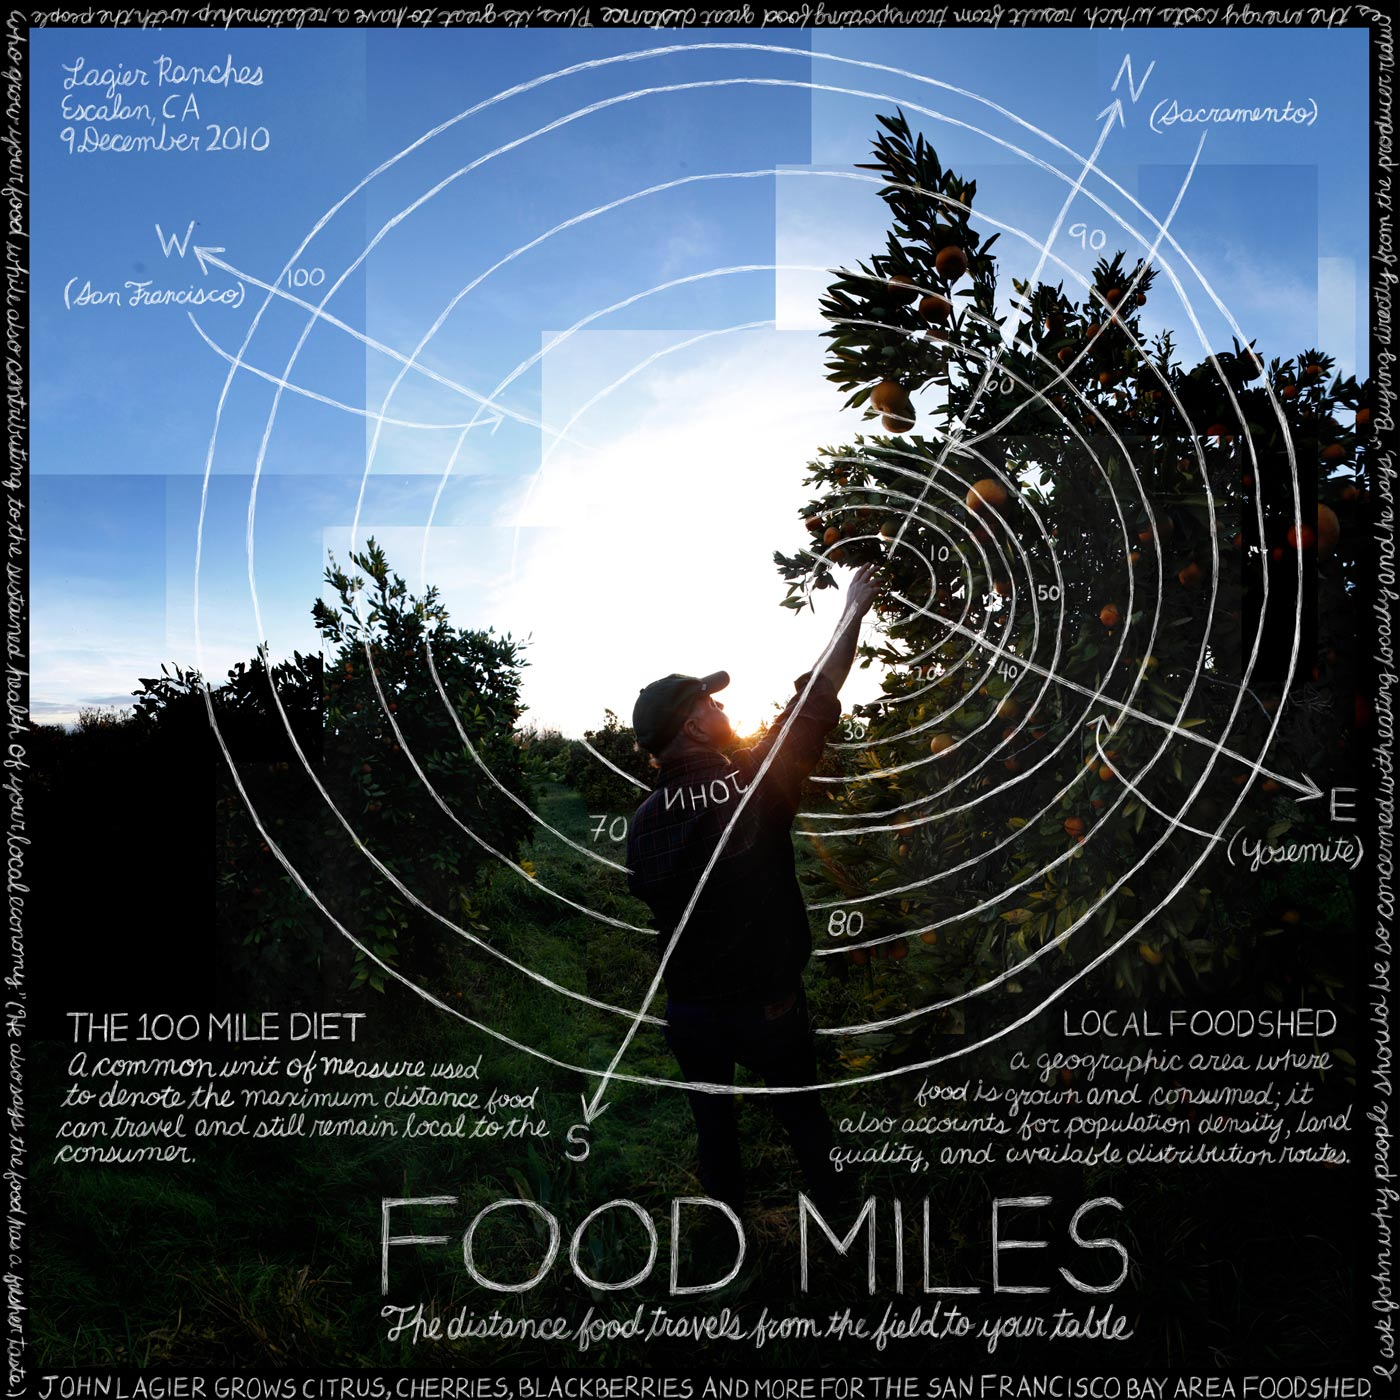 """""""Food Miles"""" John Lagier, Lagier Ranches. Escalon, CA. Credit: Information artwork by Douglas Gayeton. From the Lexicon of Sustainability project."""